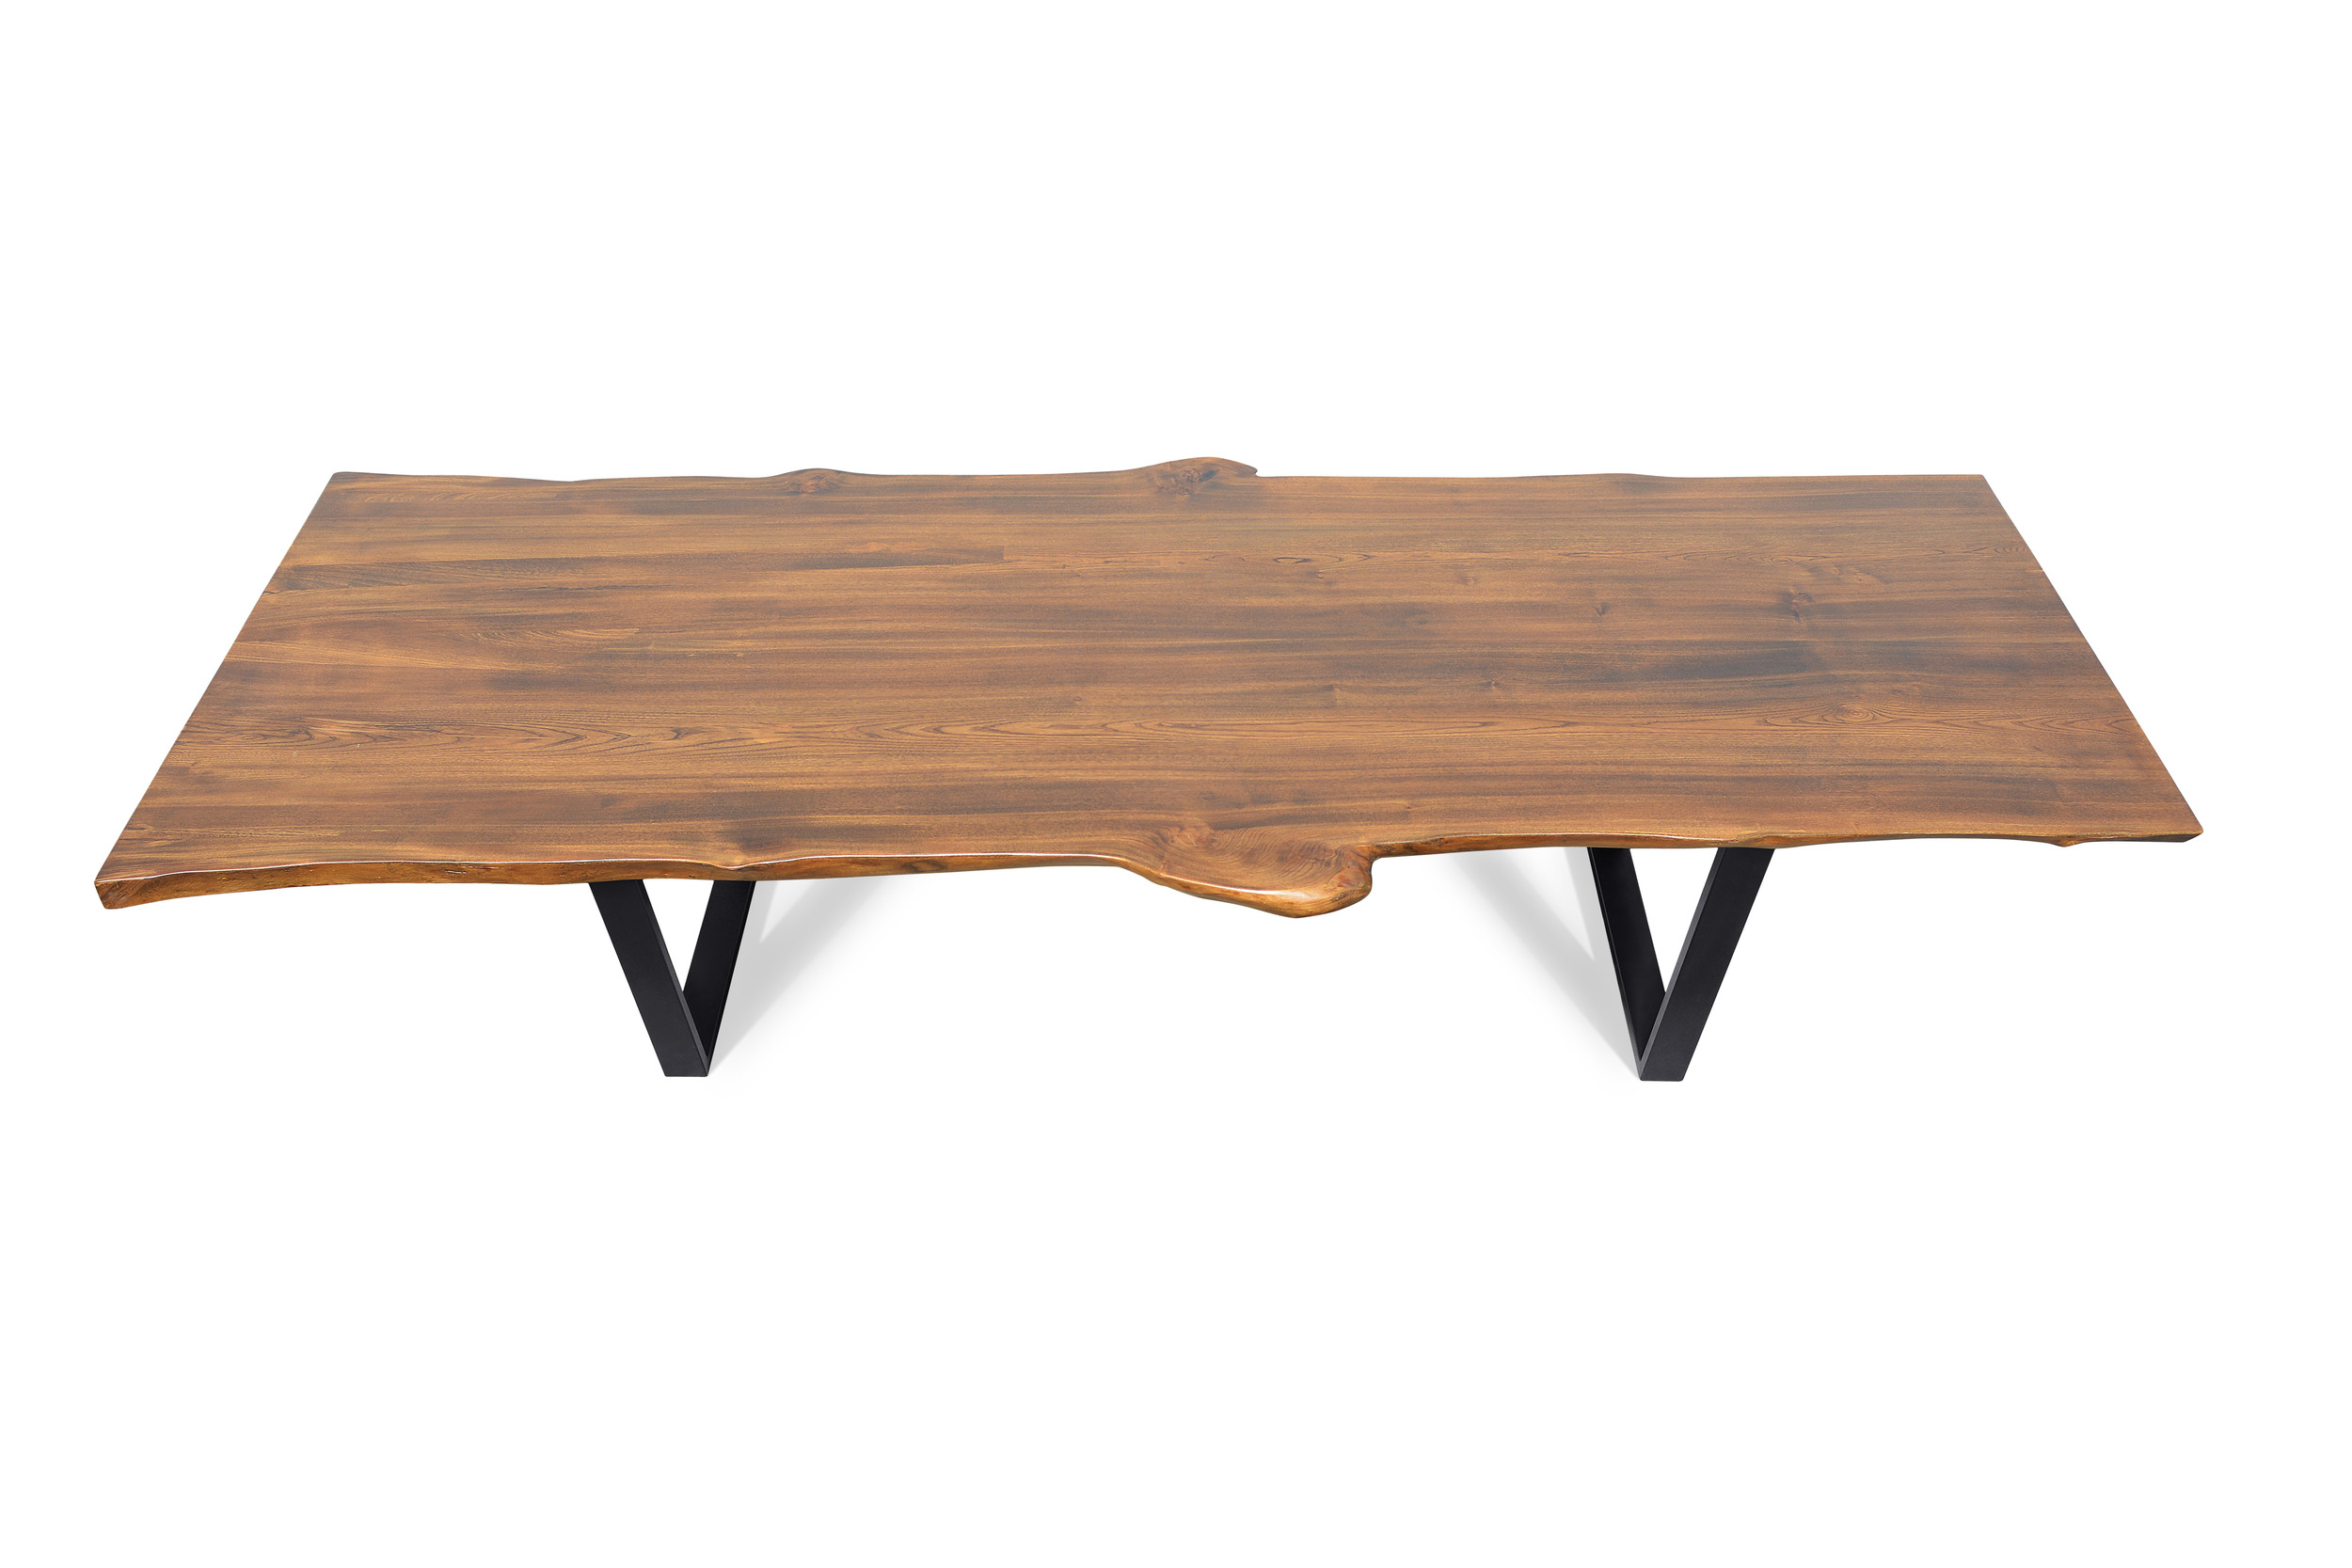 Etz & Steel Live Edge Cognac Table Black Base 1.JPG